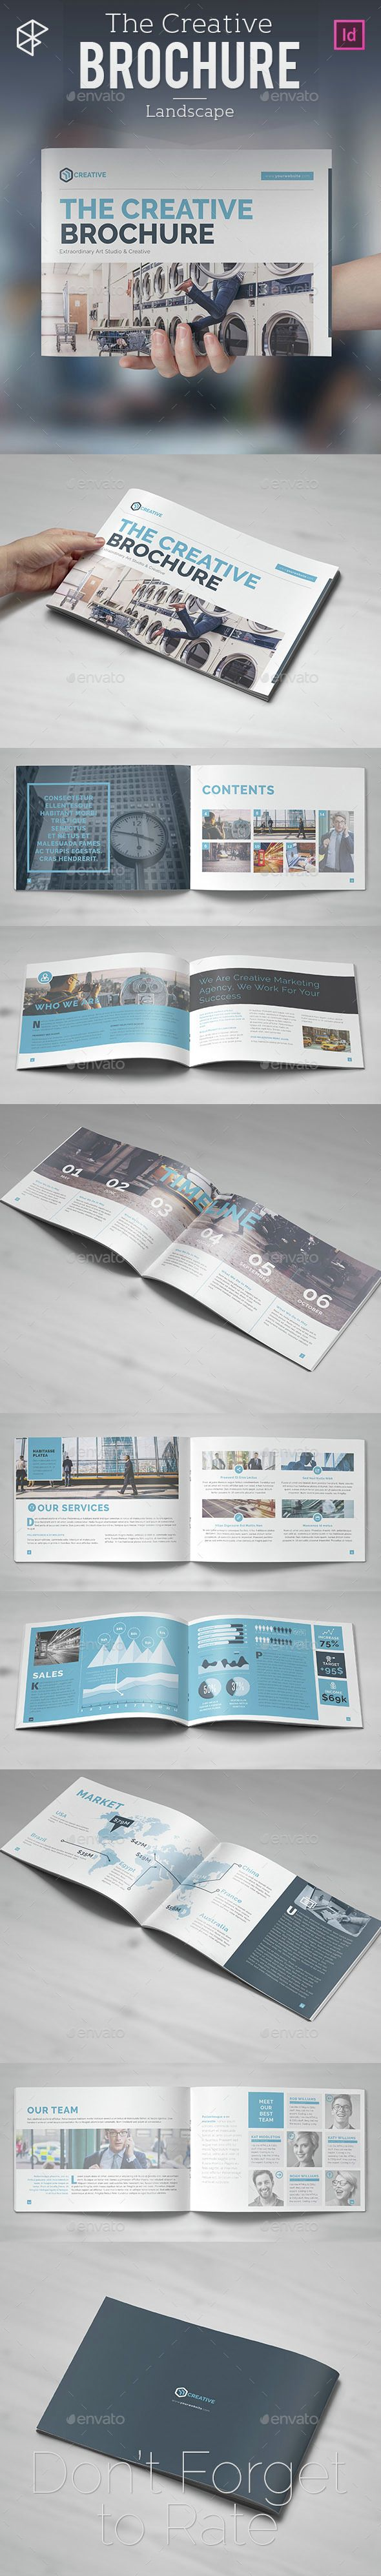 The Creative Brochure - Landscape | Brochures, Landscaping and Template